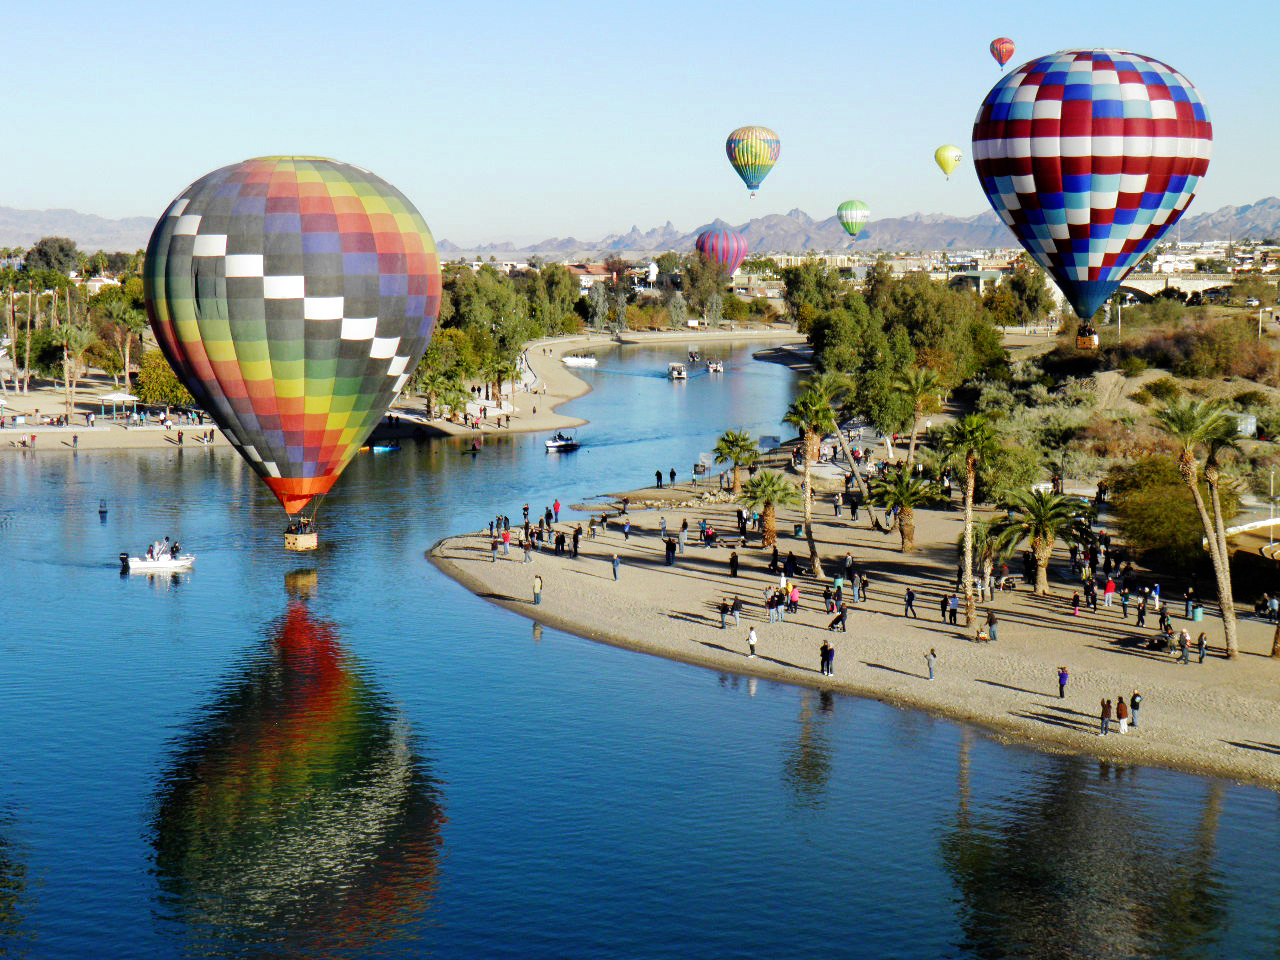 Lake Havasu Local and State Parks